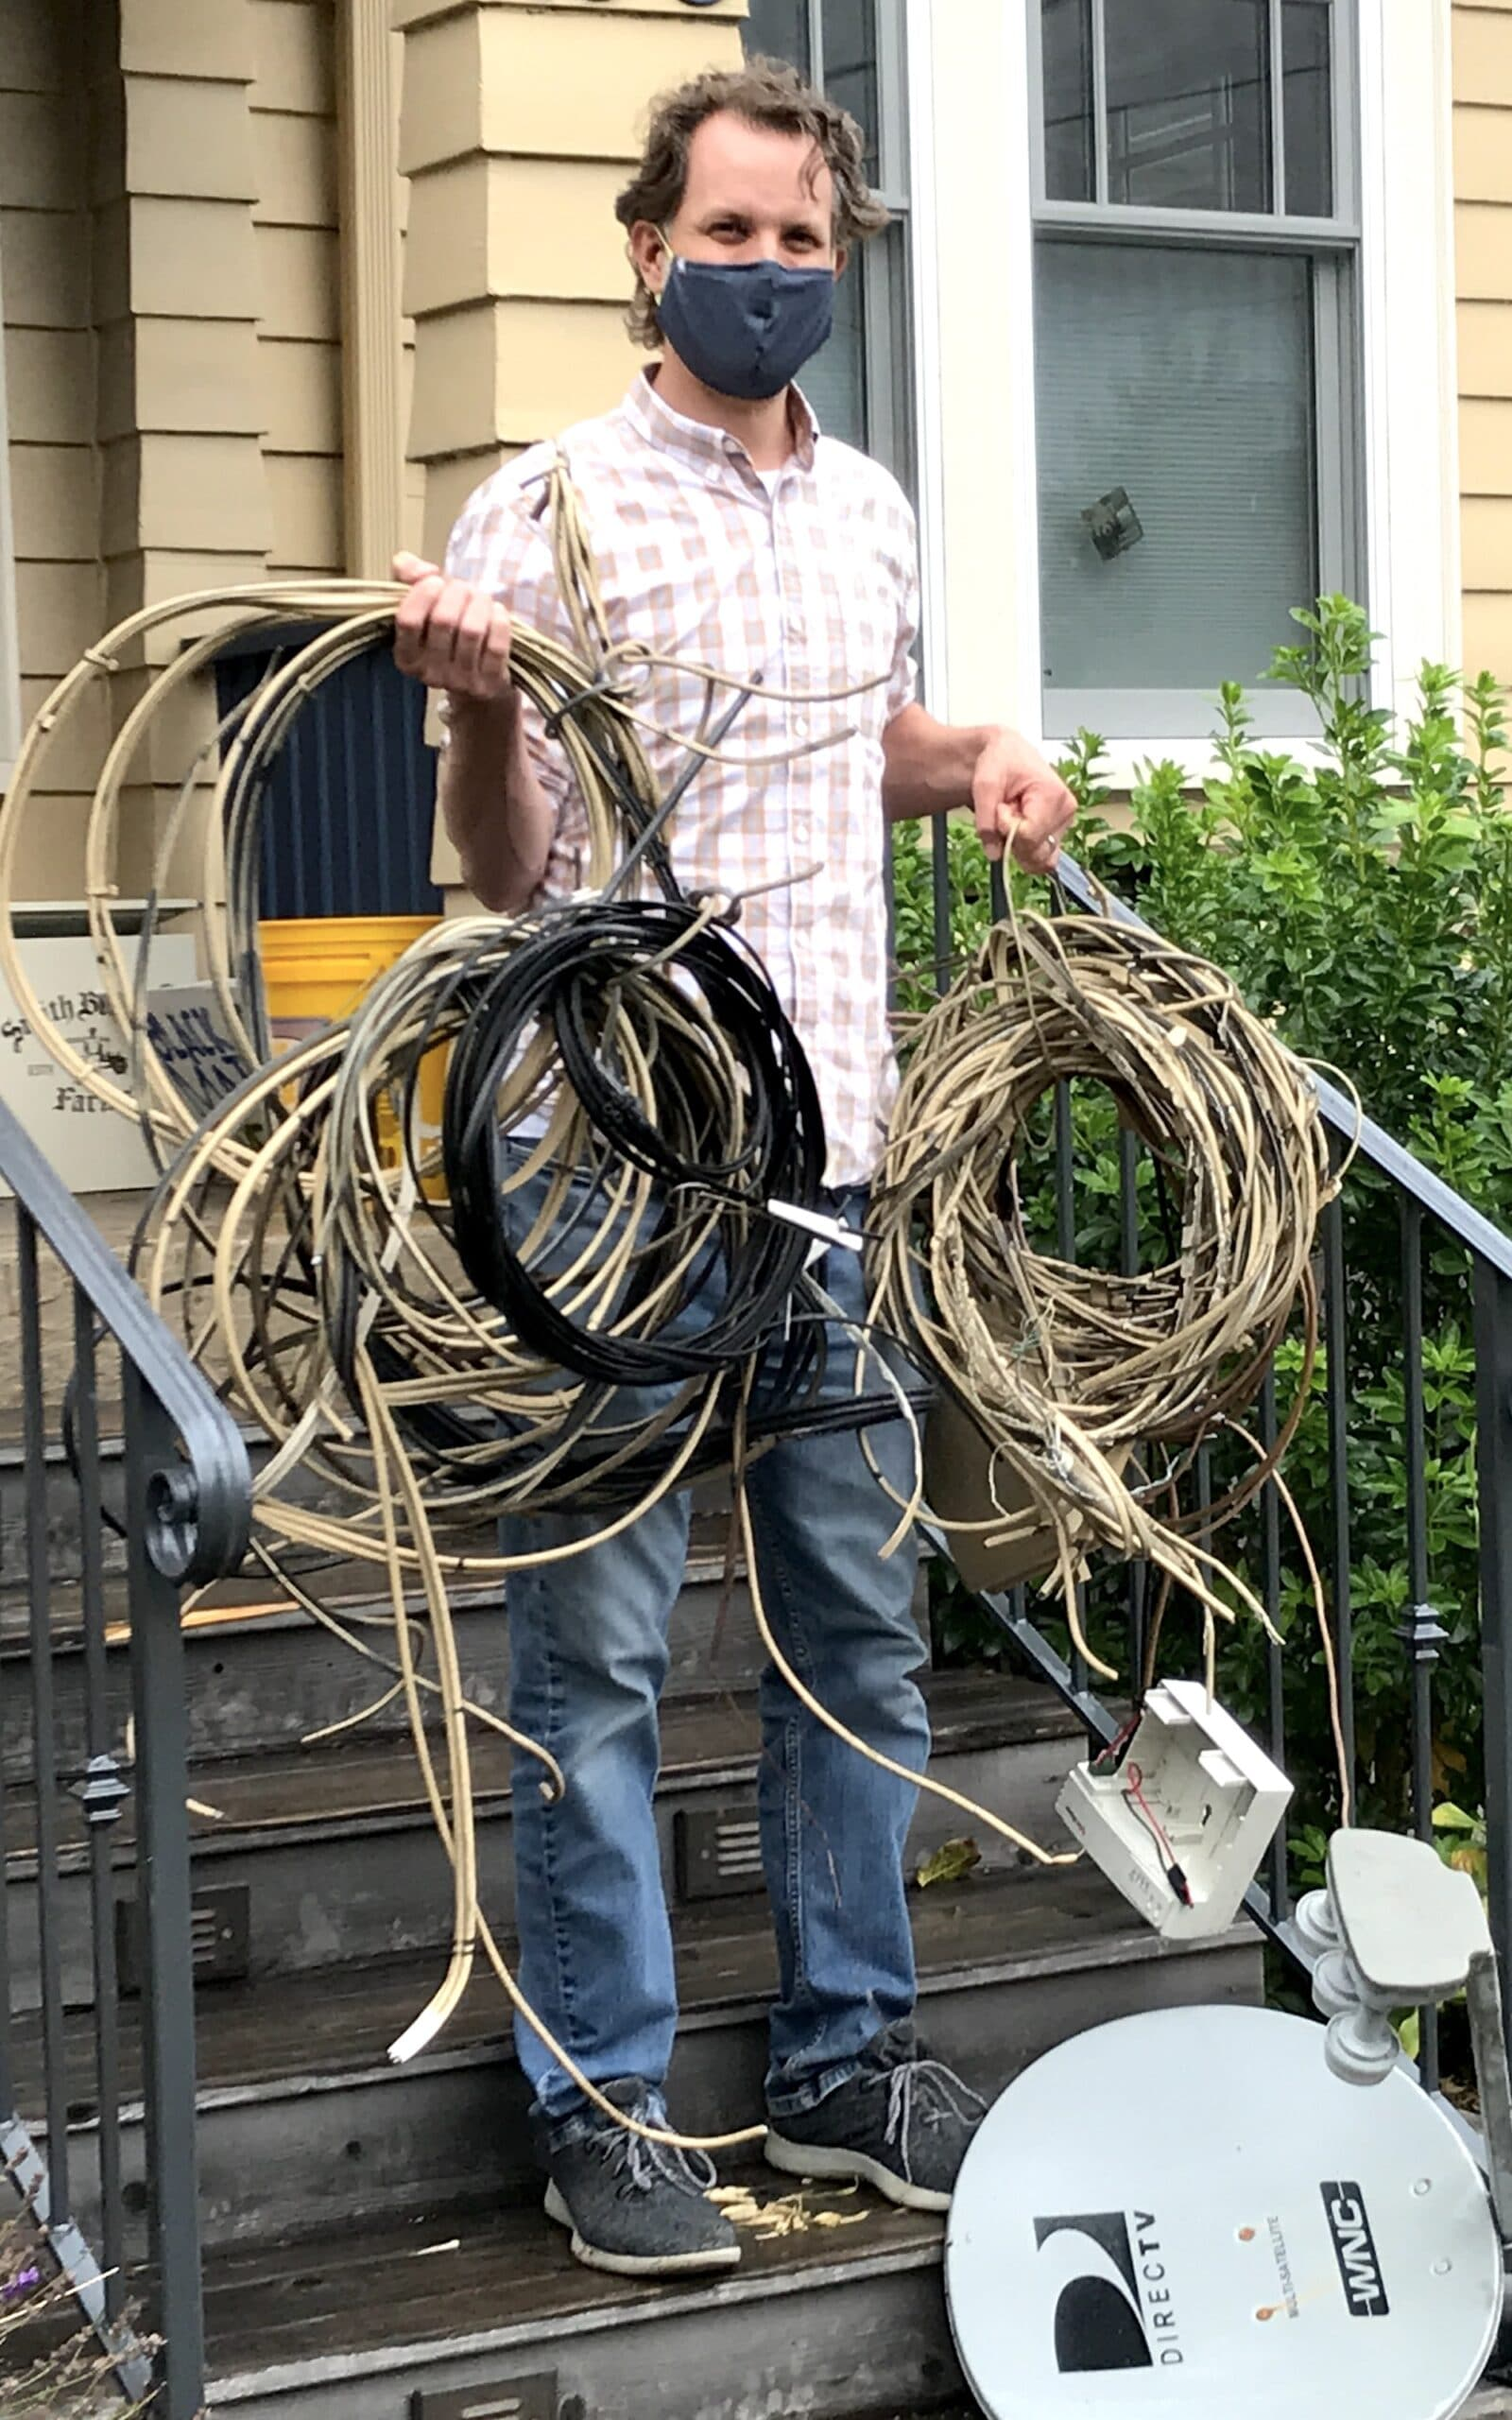 Photo of a man with the many wires and satellite dish just removed from house